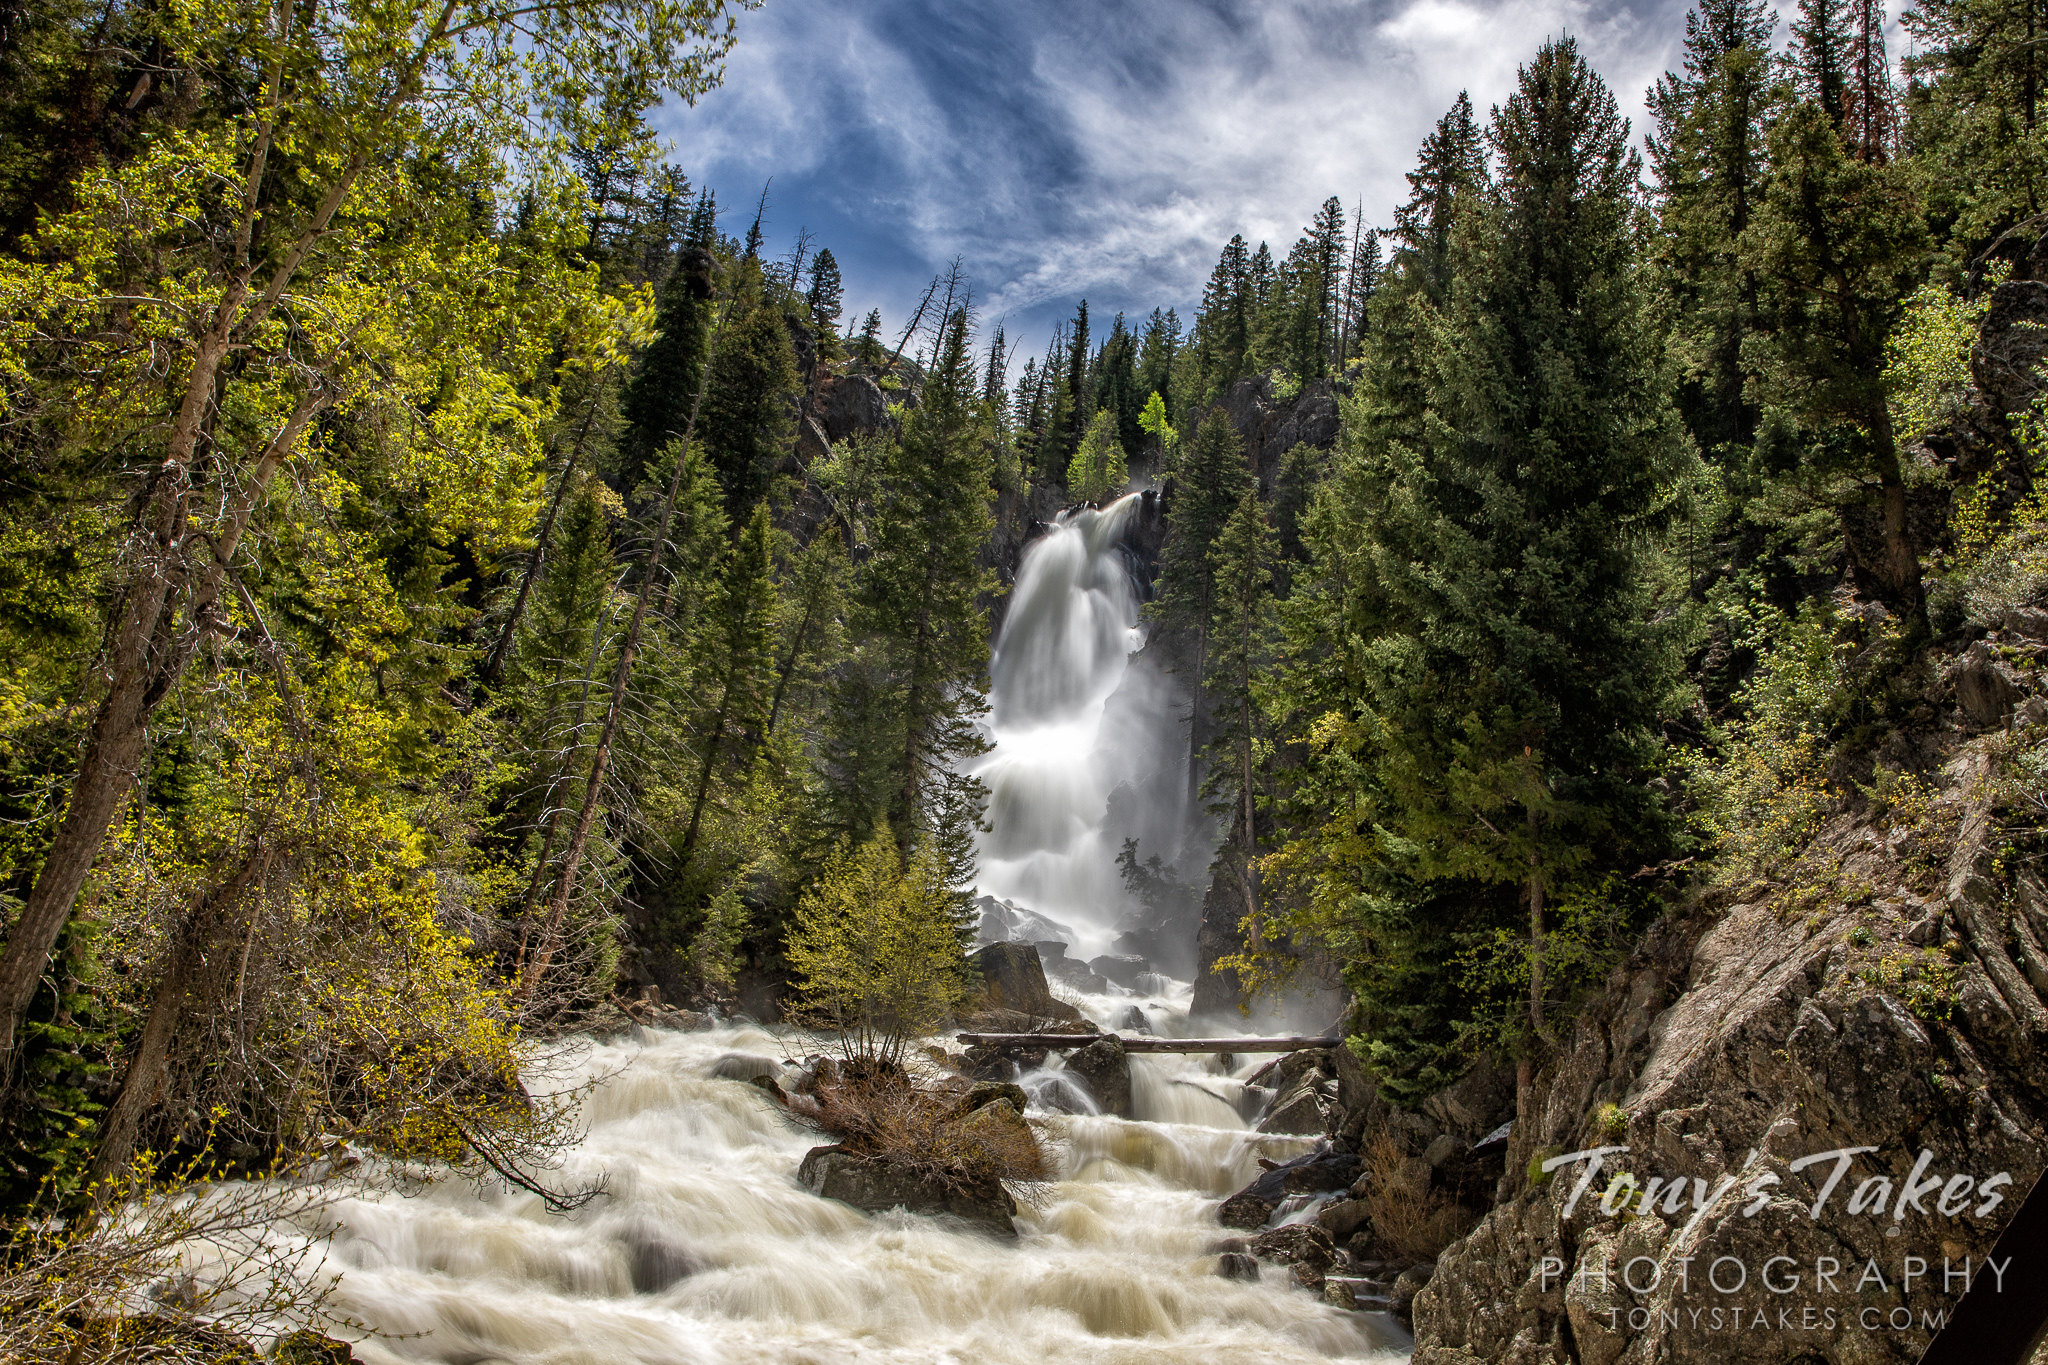 Fish Creek Falls near Steamboat Springs, Colorado roars with a strong spring run-off. (© Tony's Takes)